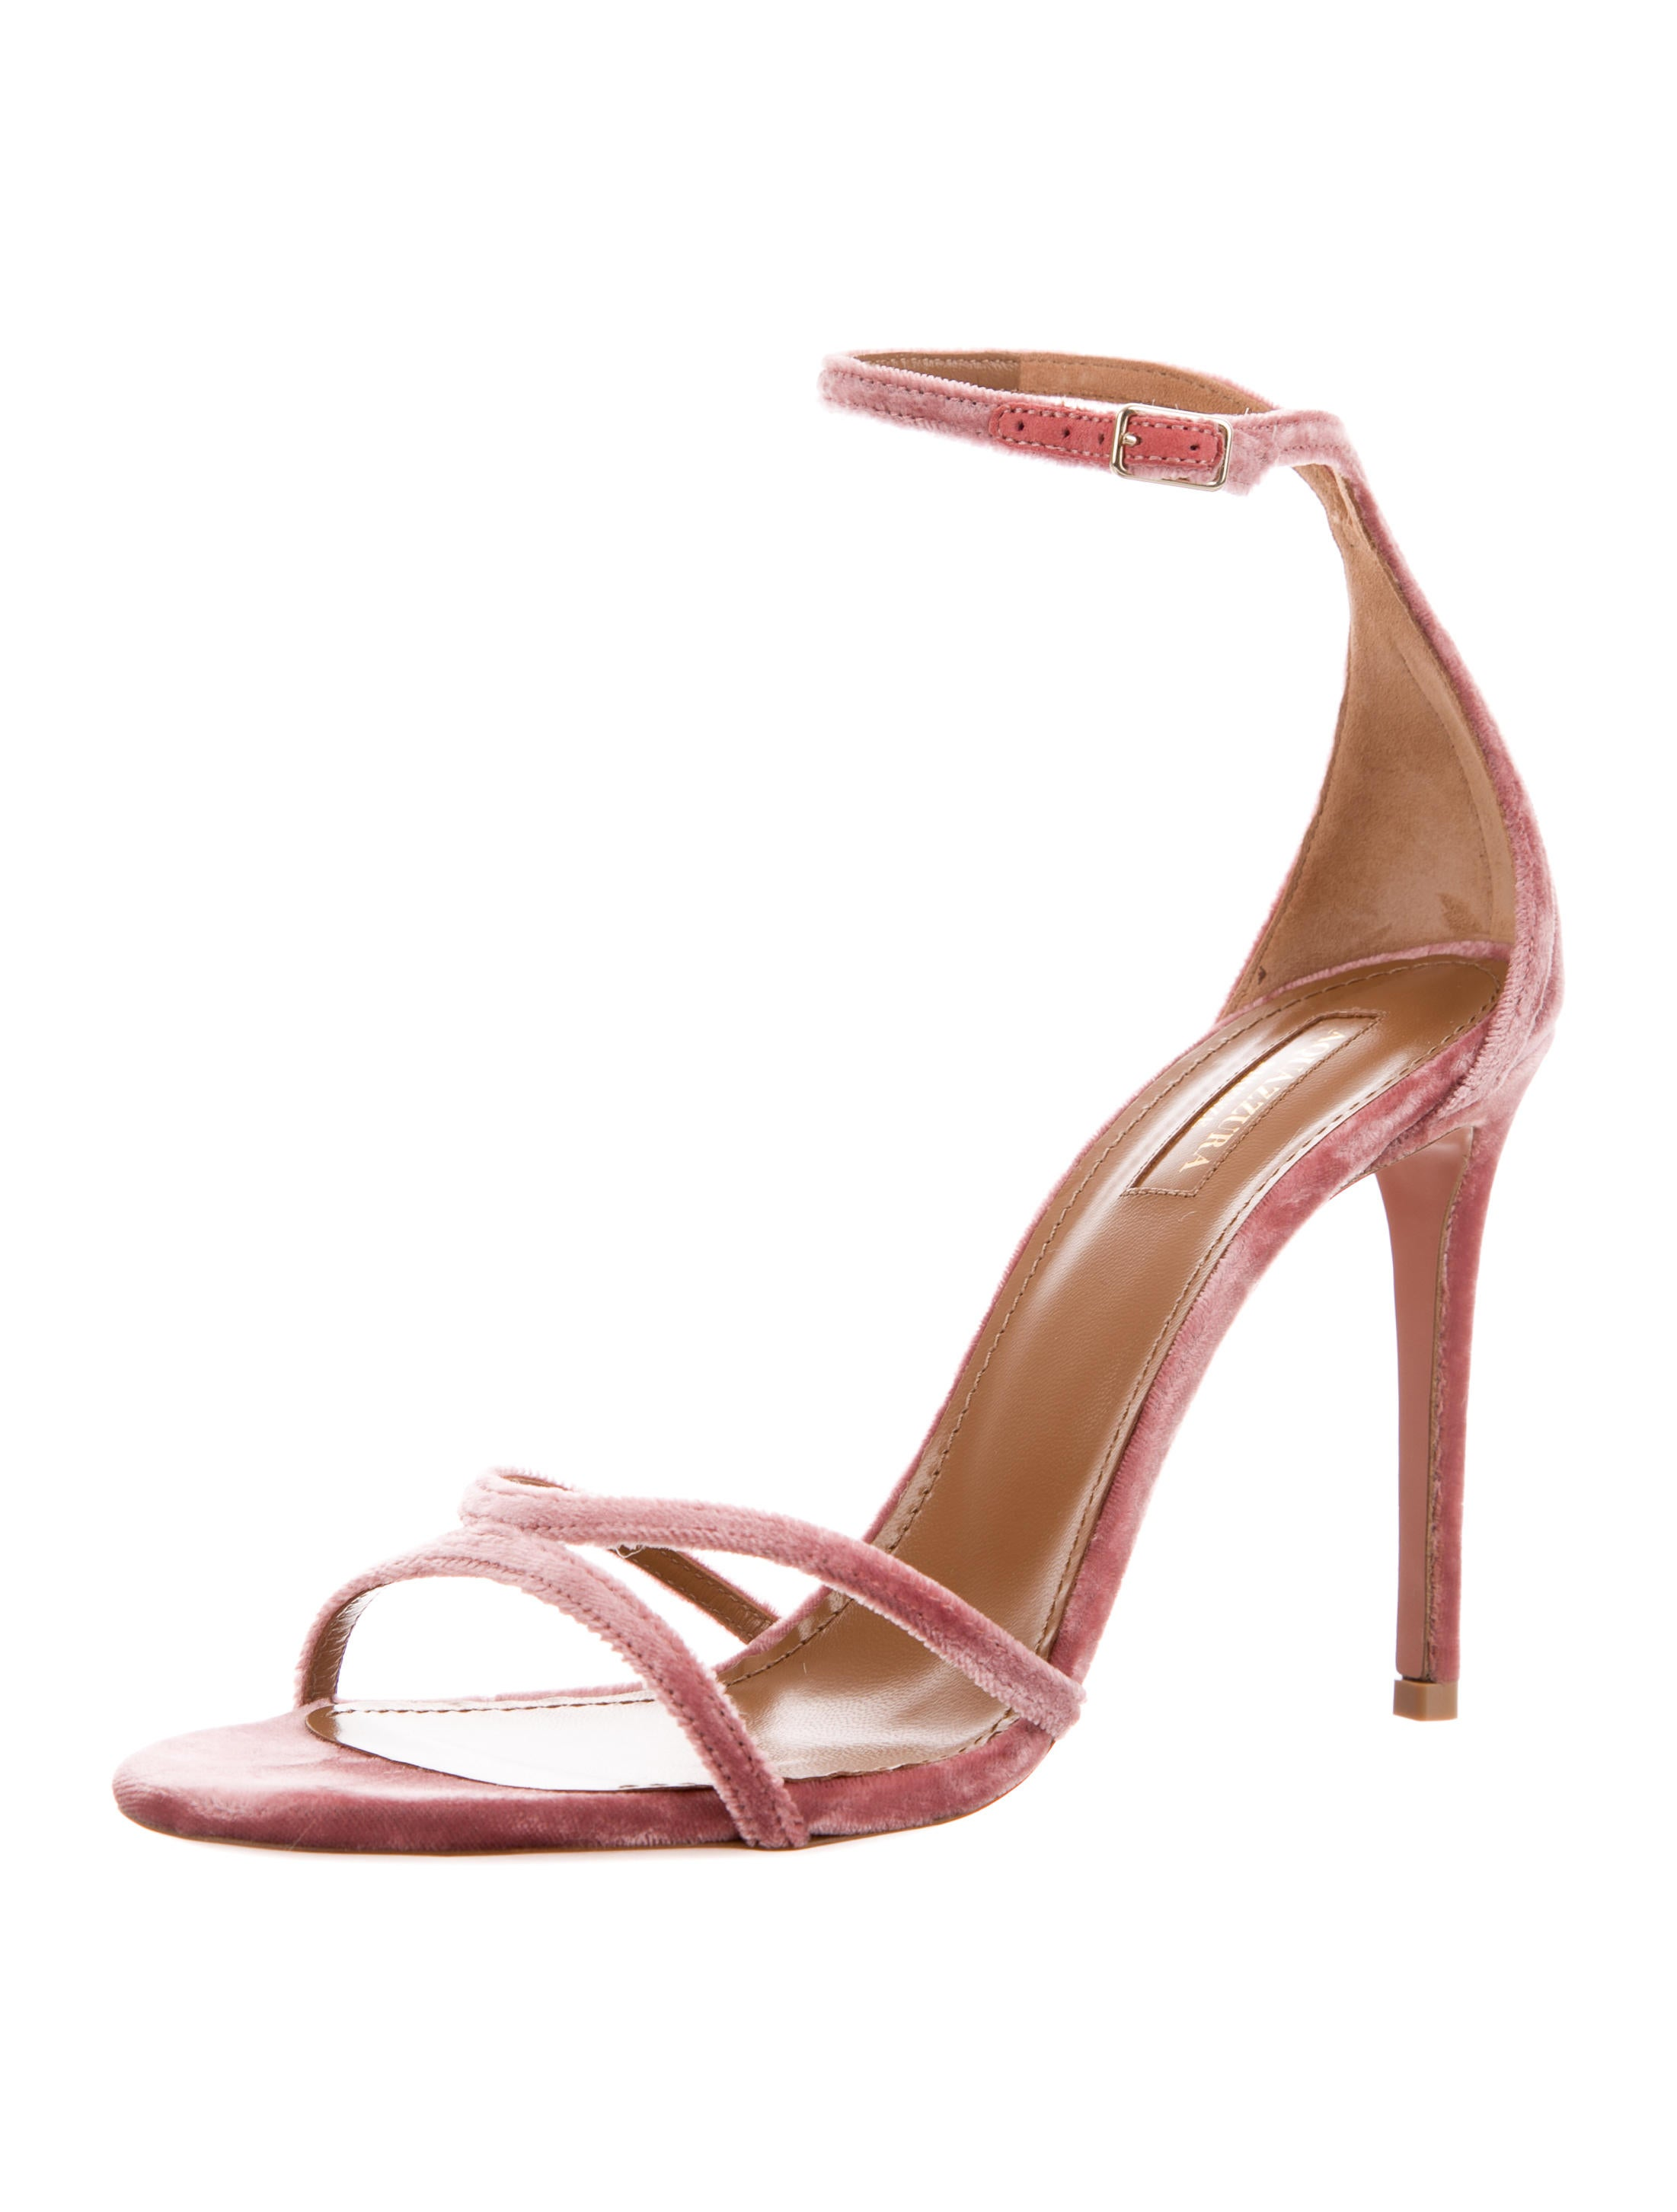 Aquazzura Purist Leather Sandals w/ Tags discount lowest price hot sale cheap sale best lowest price sale online clearance big discount ldgJgnwfhd